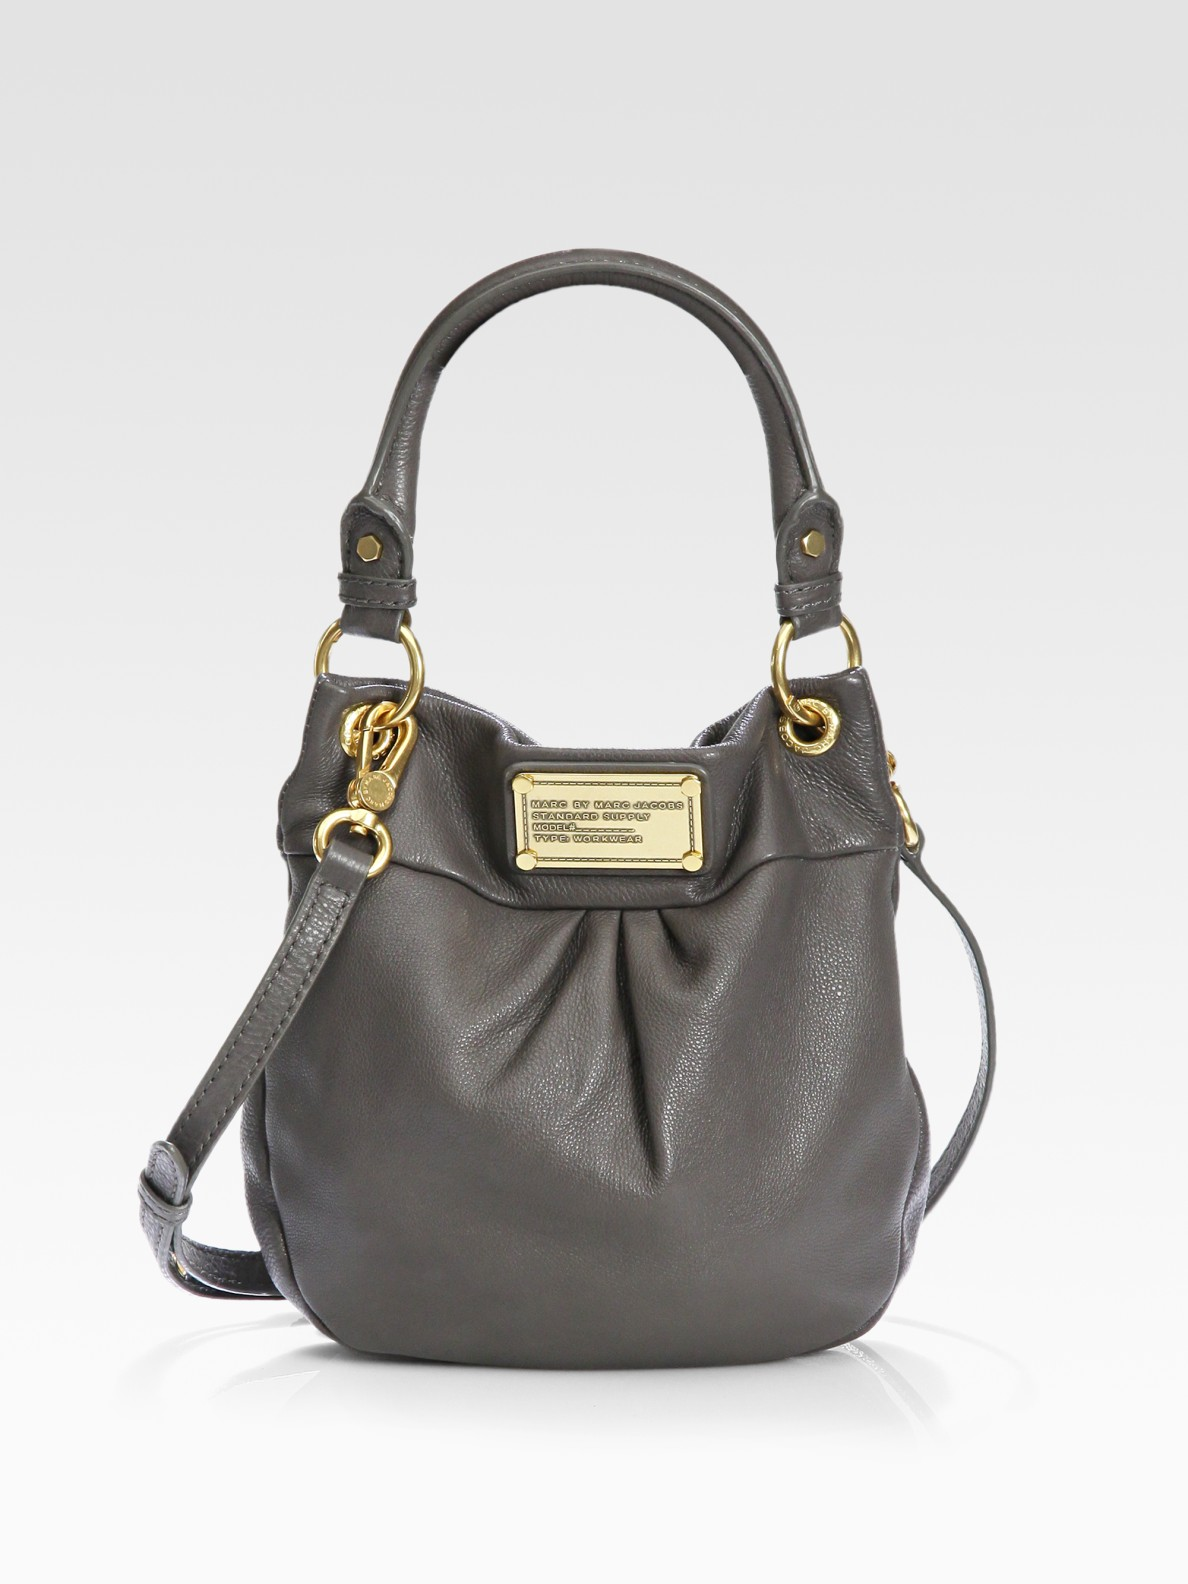 Lyst - Marc By Marc Jacobs Classic Q Mini Hillier Hobo Bag in Black d3be16d704